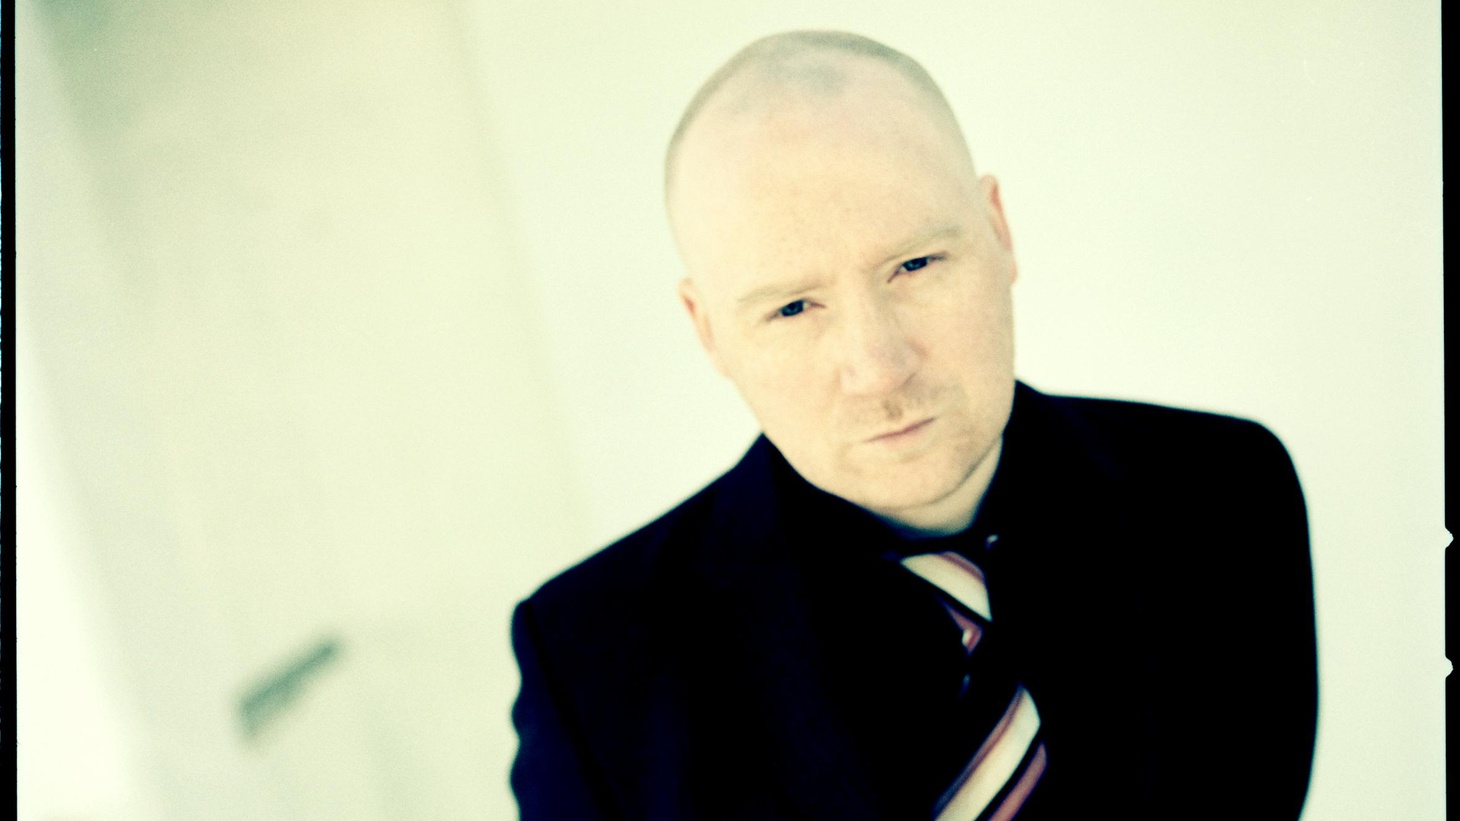 """Icelandic composer Jóhann Jóhannsson's work melds electronic elements with stately classical orchestrations. He's written a number of soundtracks for feature films and its easy to see why -- his rich textures and subtle overtones free the imagination in a wonderful way. Today's Top Tune is """"The Gift."""""""